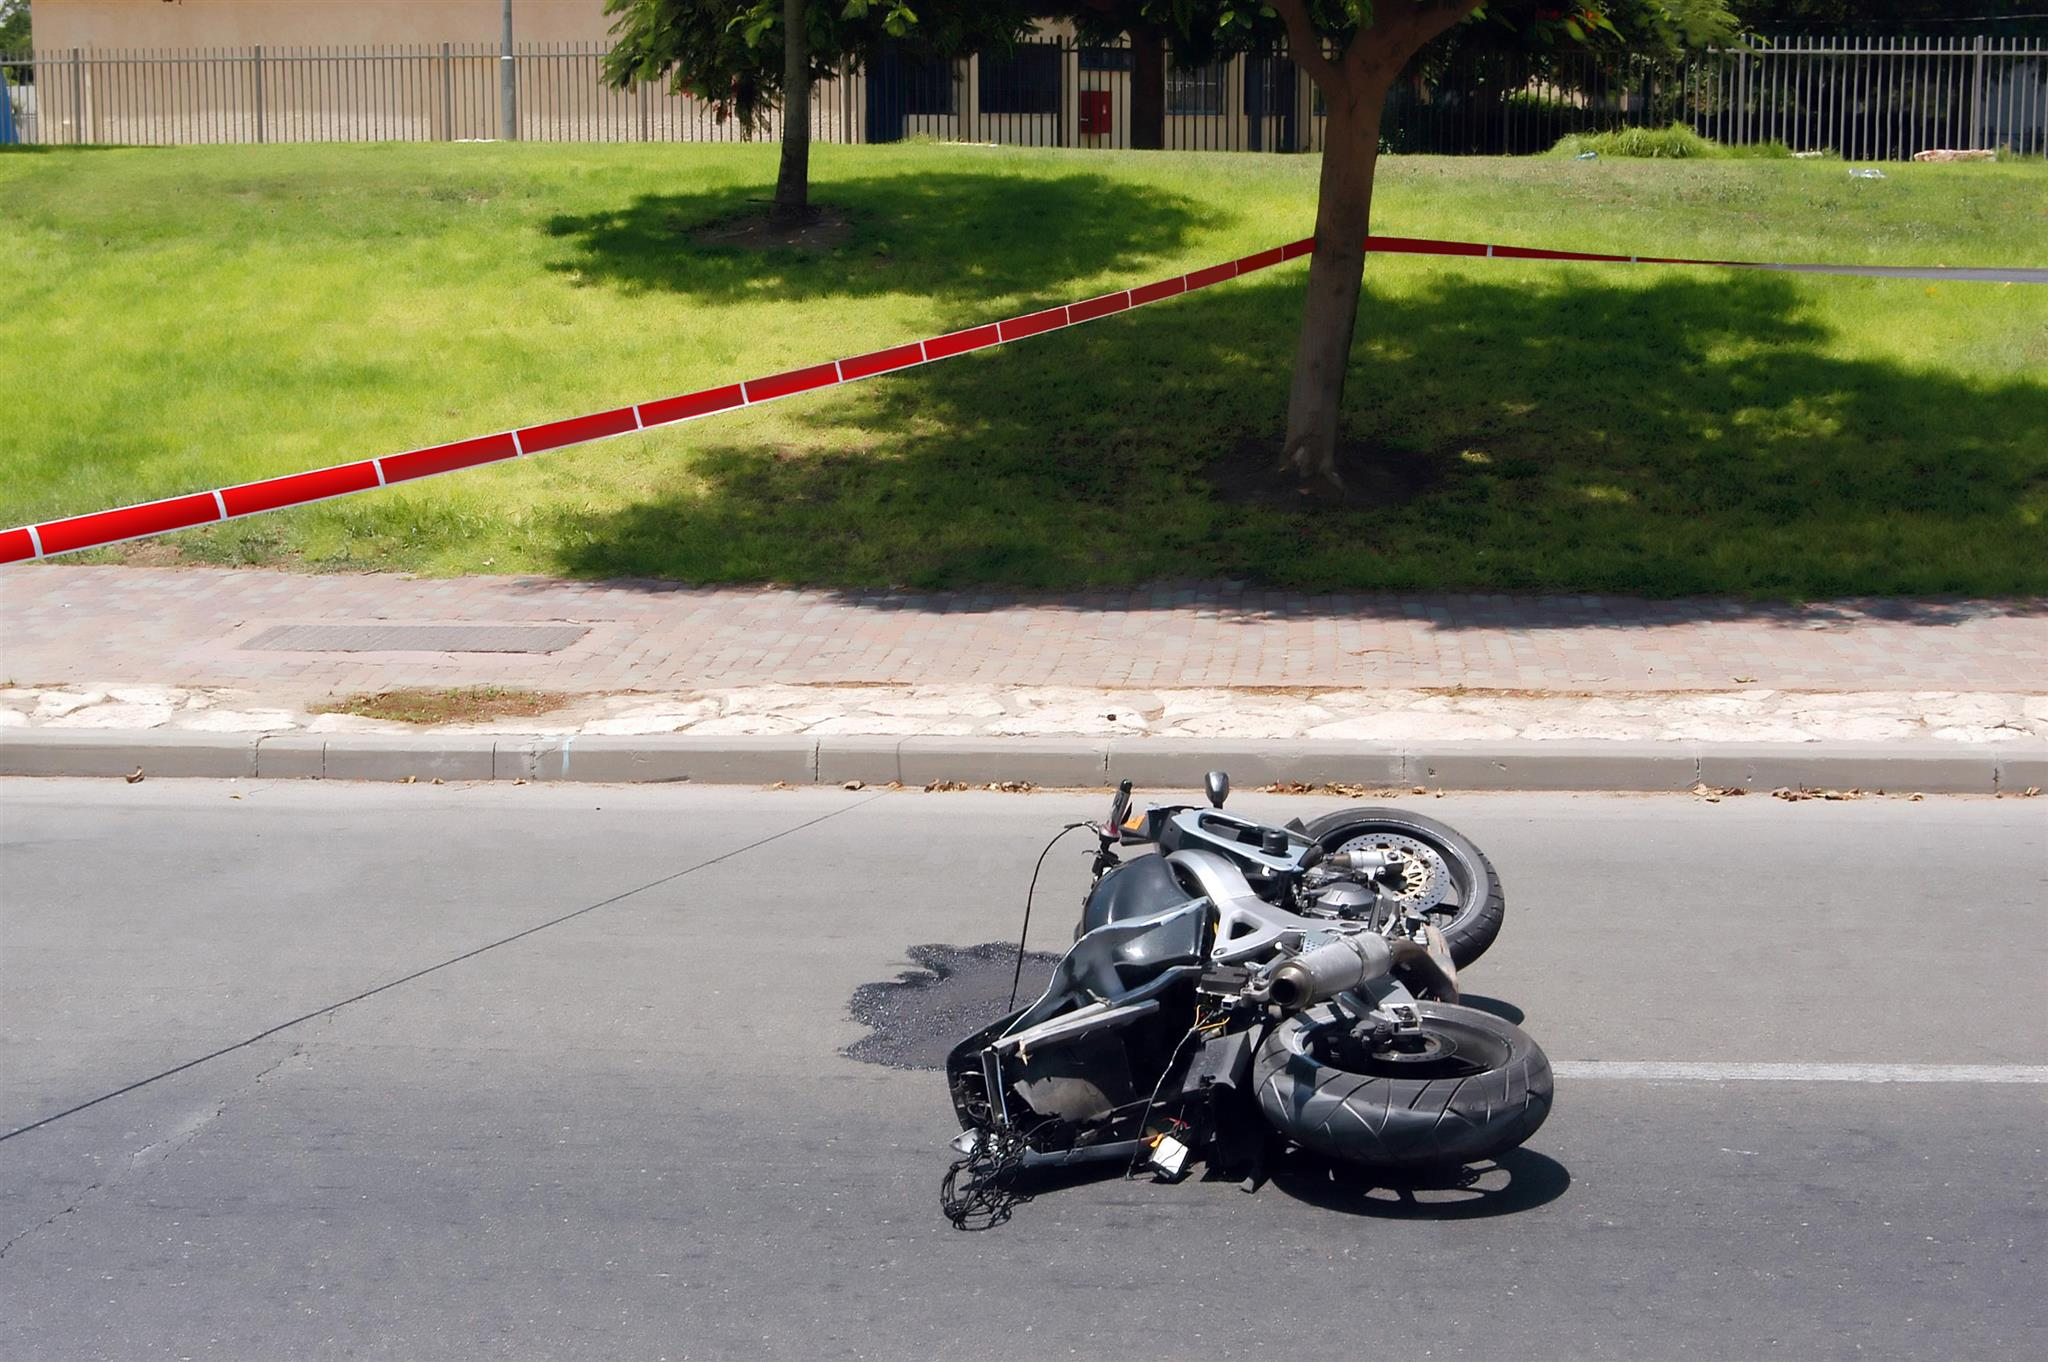 What Are the Consequences of a Head Injury From a Motorcycle Accident in Los Angeles